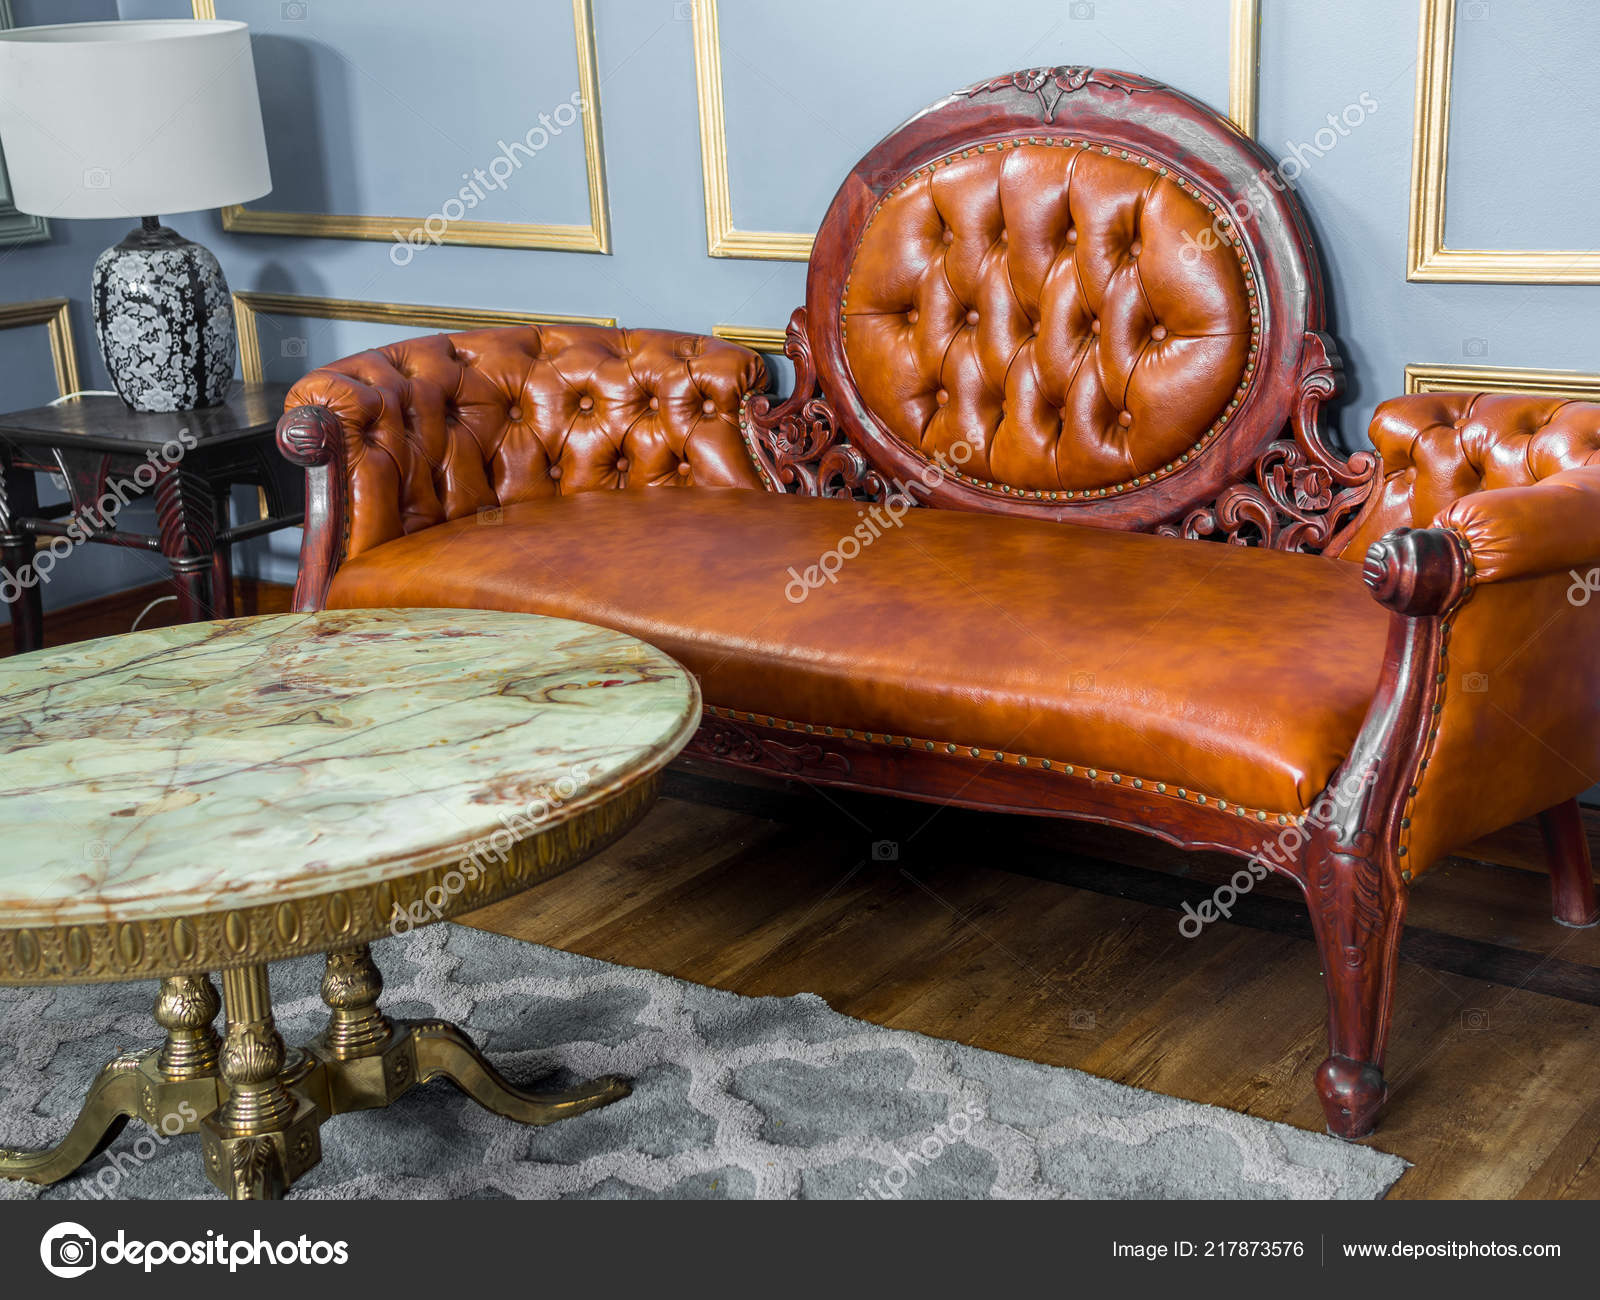 Vintage Luxury Red Brown Leather Sofa Marble Brass Table Vintage Stock Photo C Tete Escape 217873576